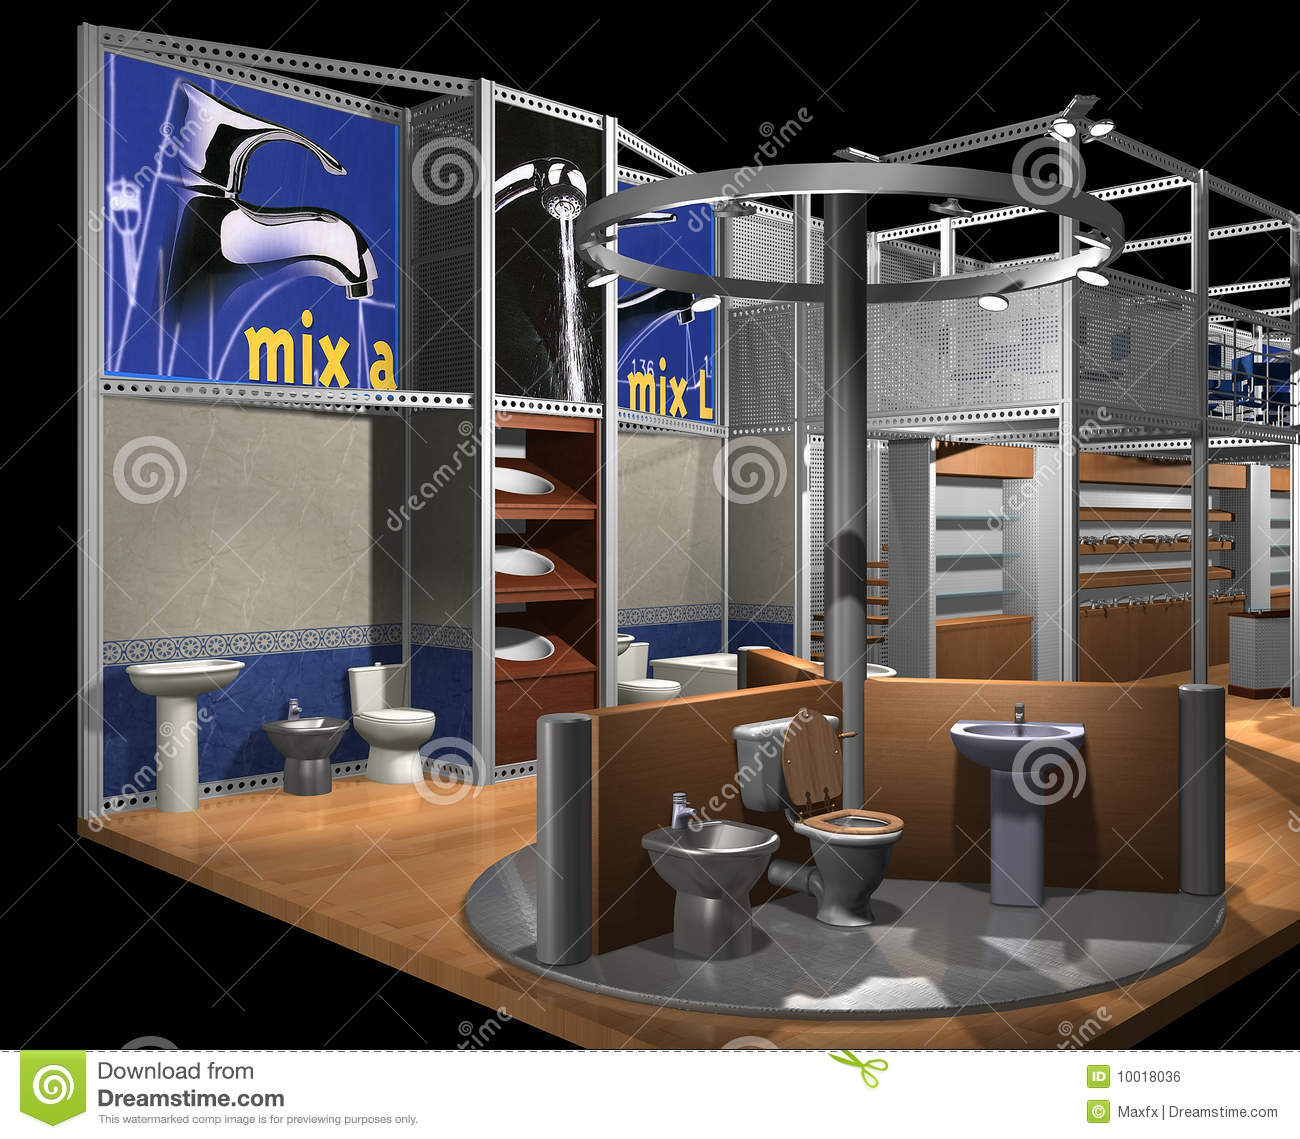 3d Exhibition Hall : D render of exhibition hall royalty free stock image